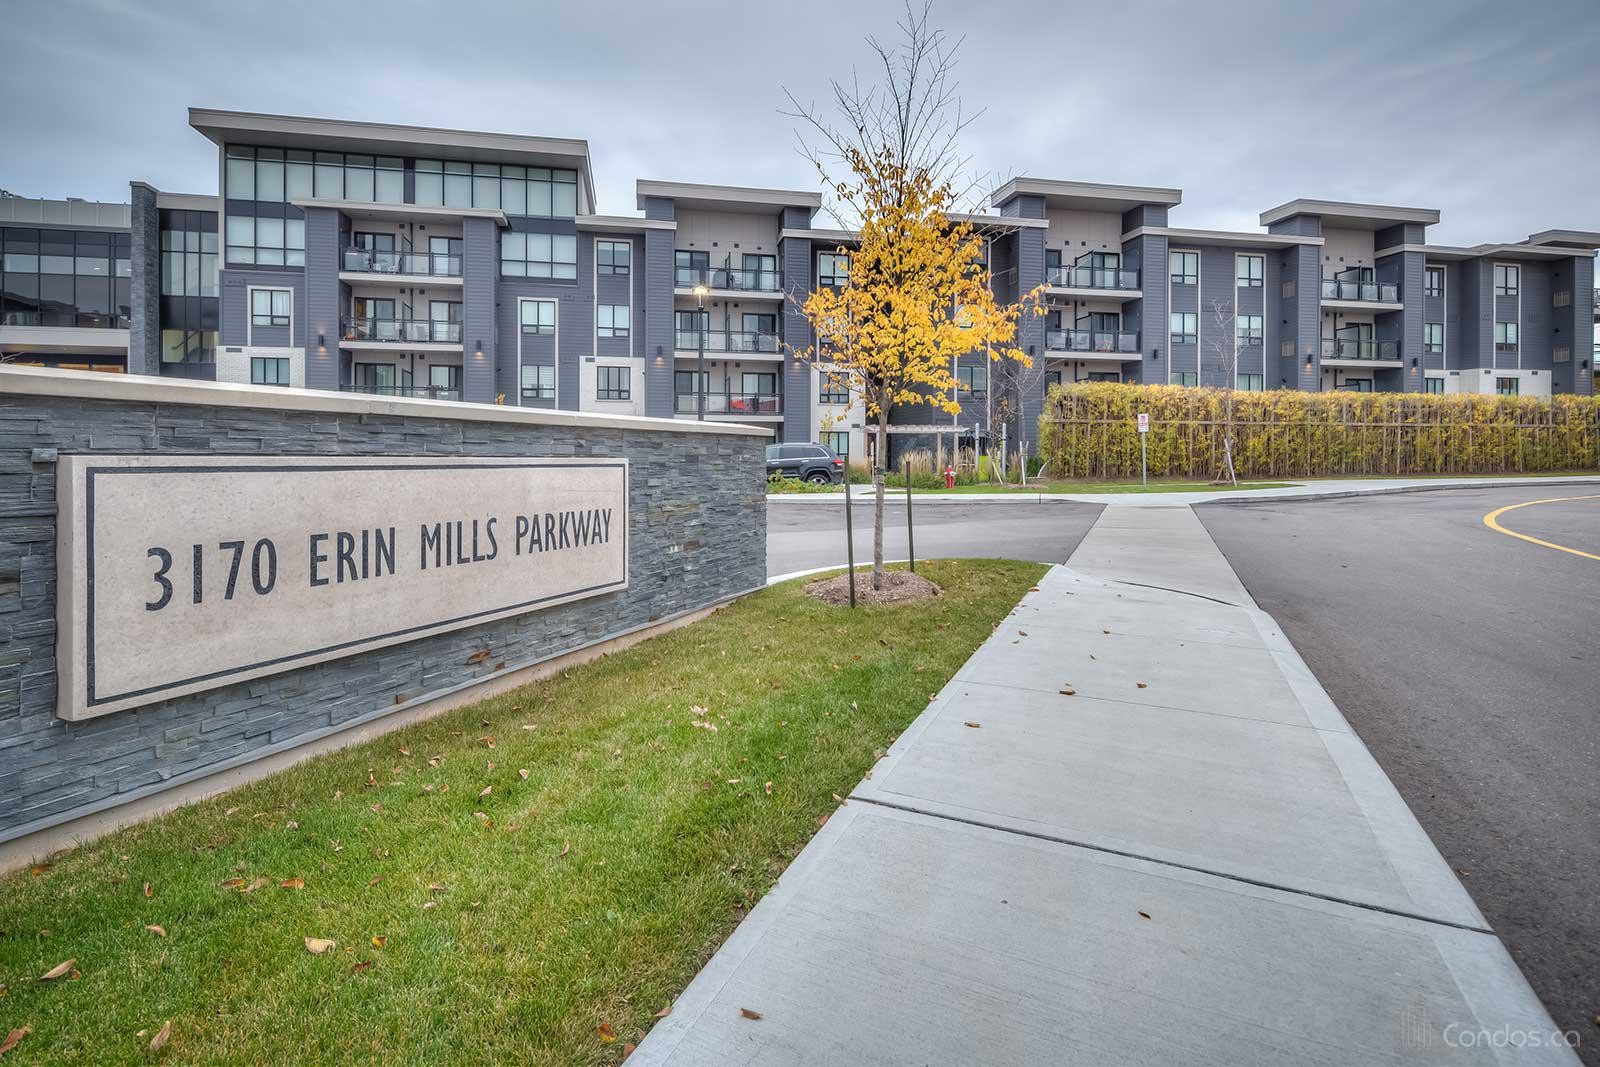 Windows On The Green at 3170 Erin Mills Pkwy, Mississauga 1